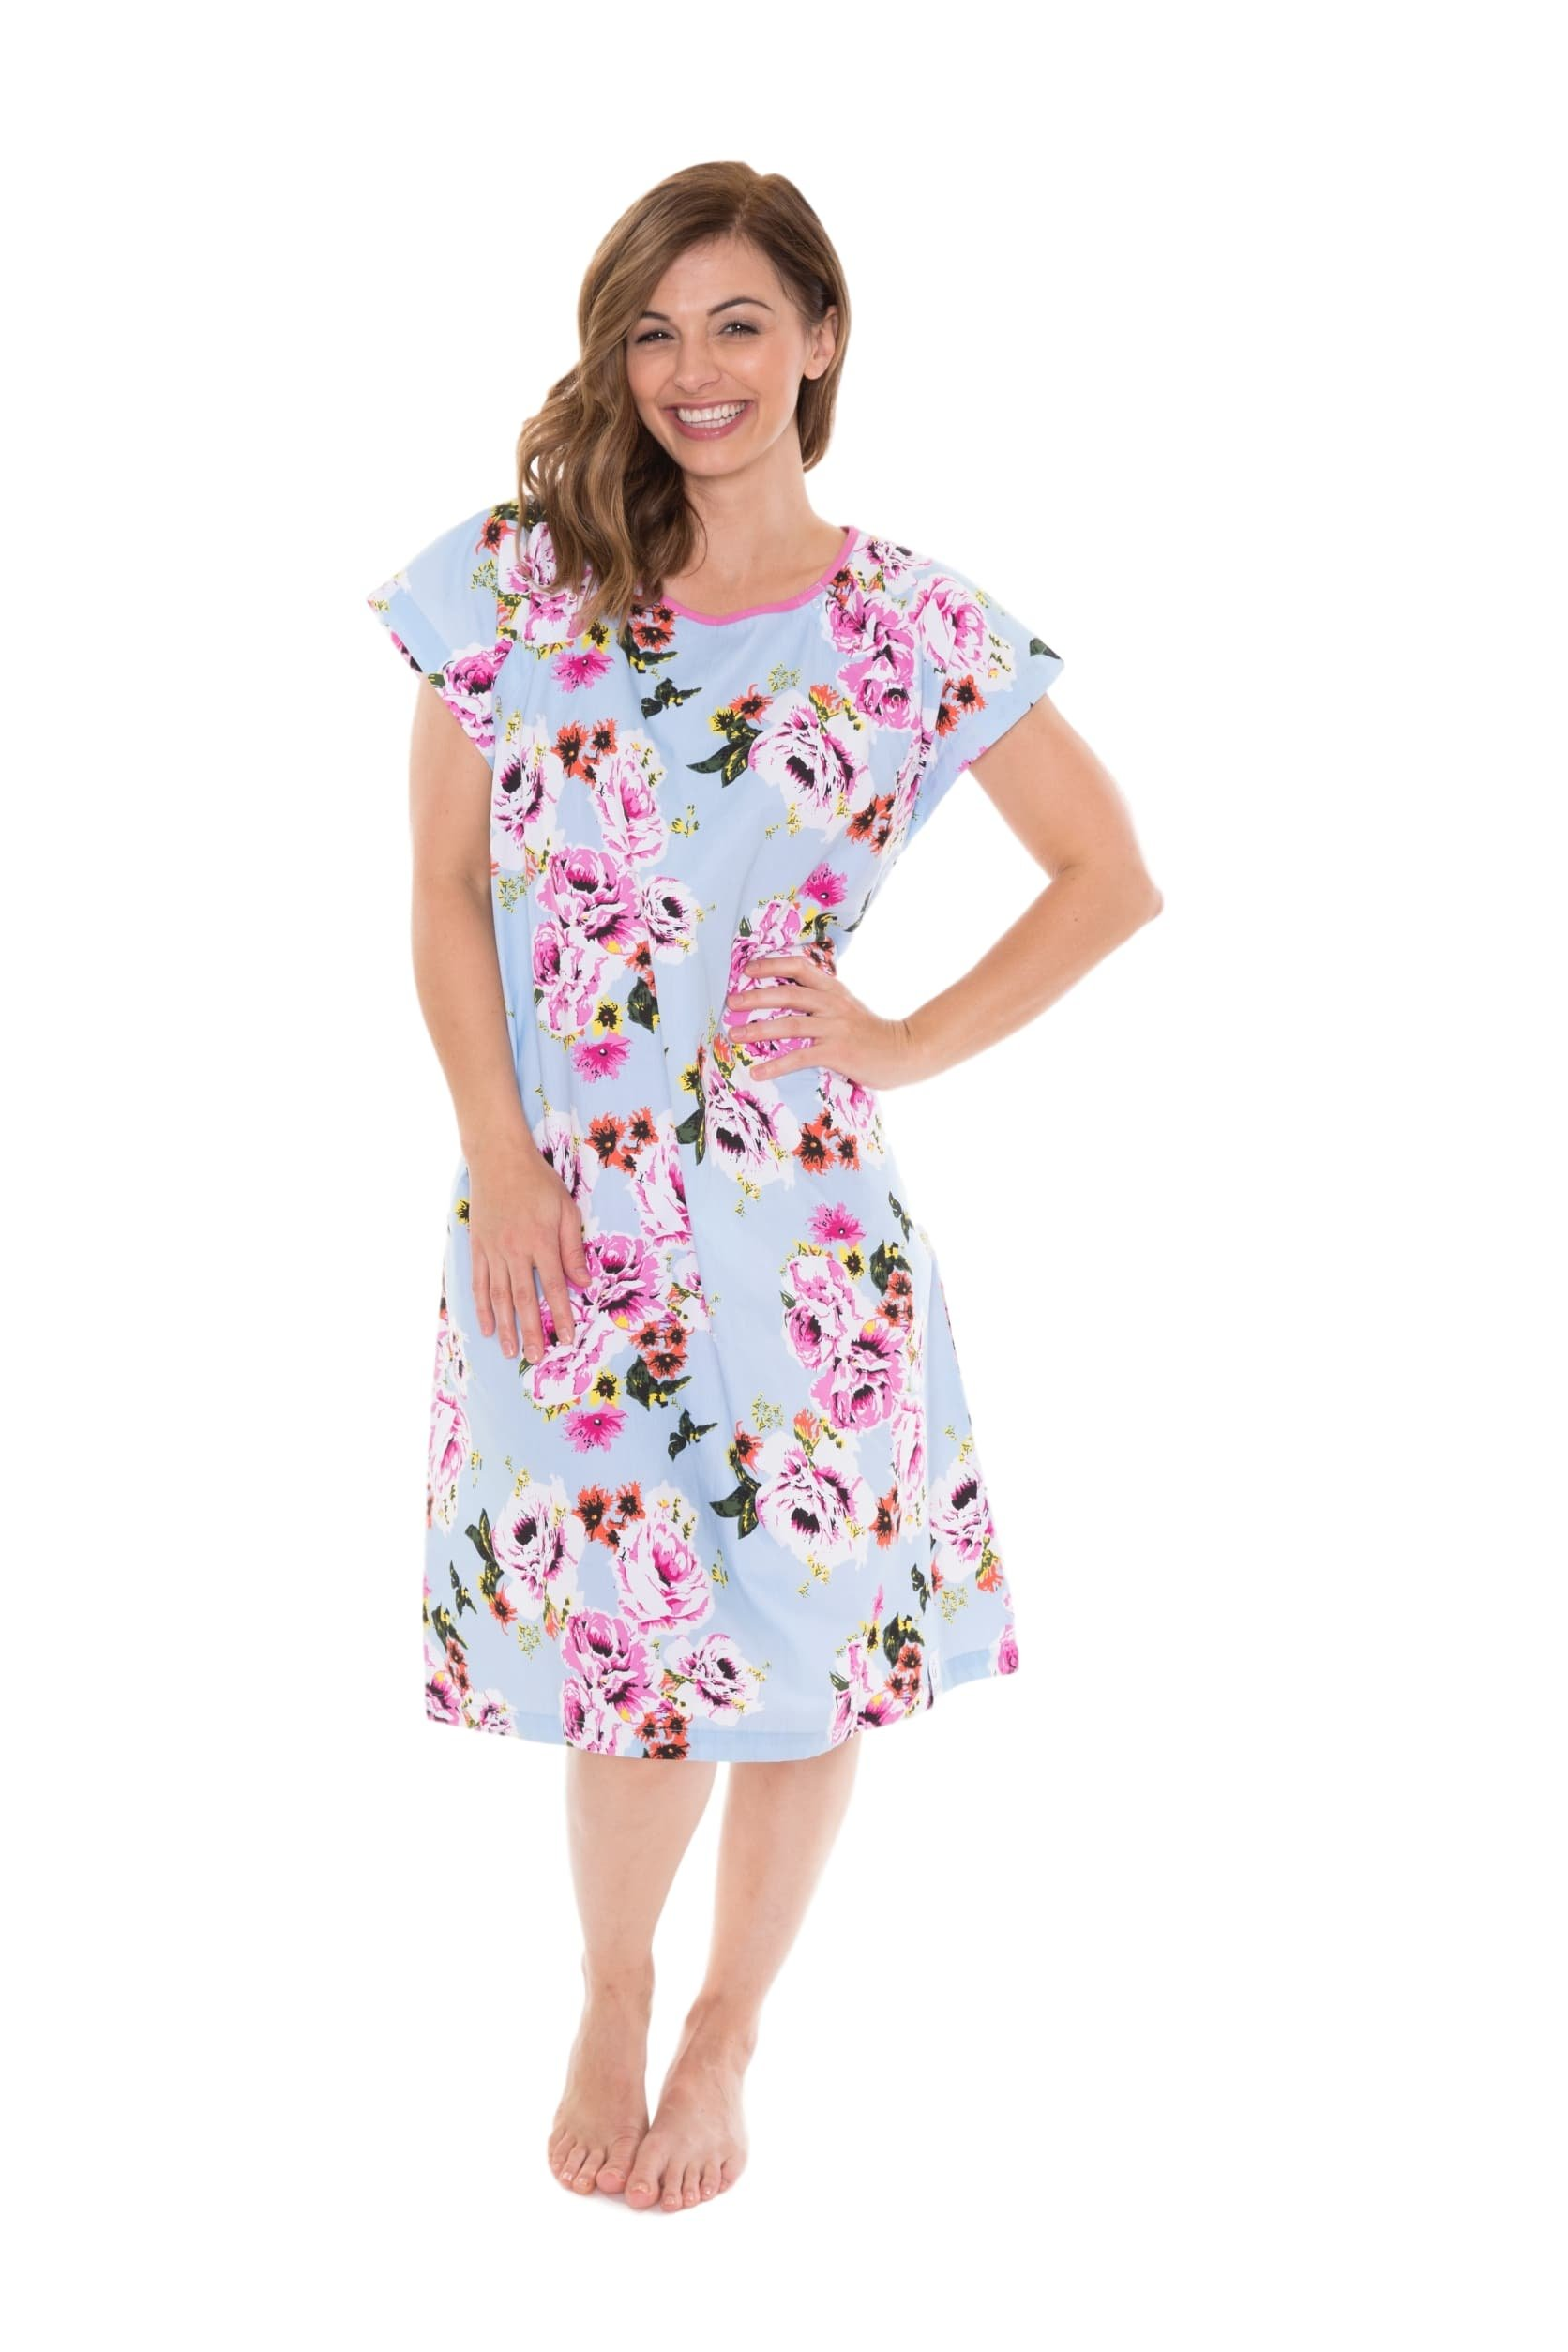 Gownies - Designer Hospital Patient Gown, 100% Cotton, Hospital Stay (L/XL Size 10-16, Isla) by Gownies (Image #1)